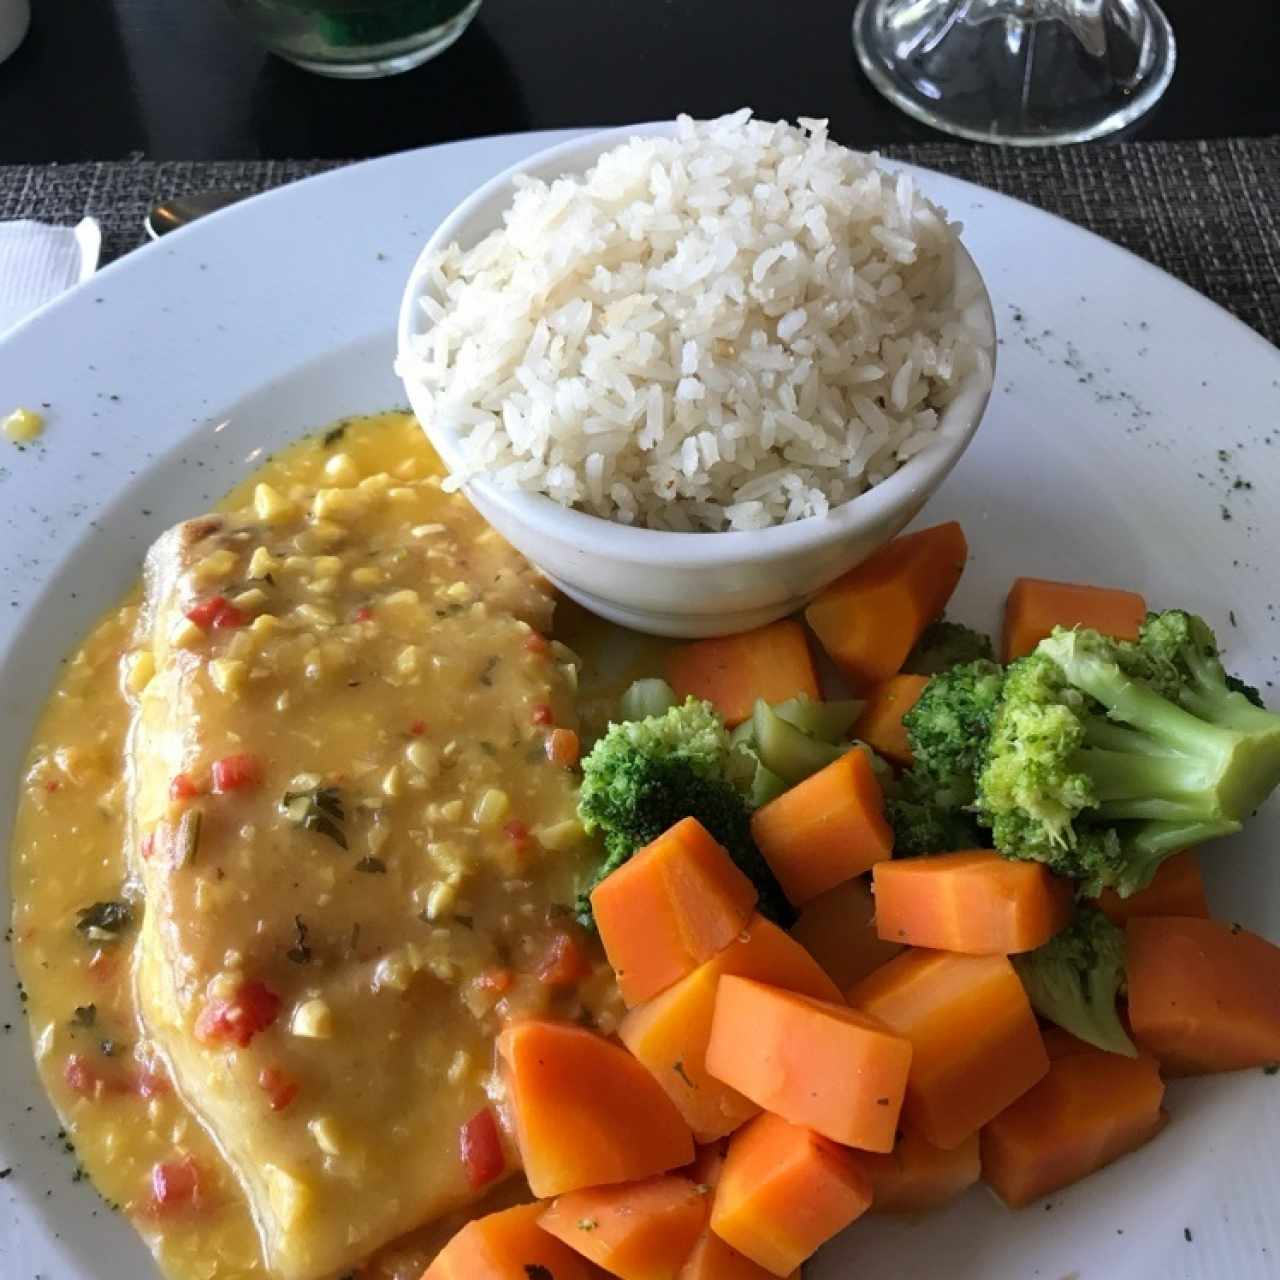 Corvina 🐟 vegetales 🥕🥦 y arroz 🍚